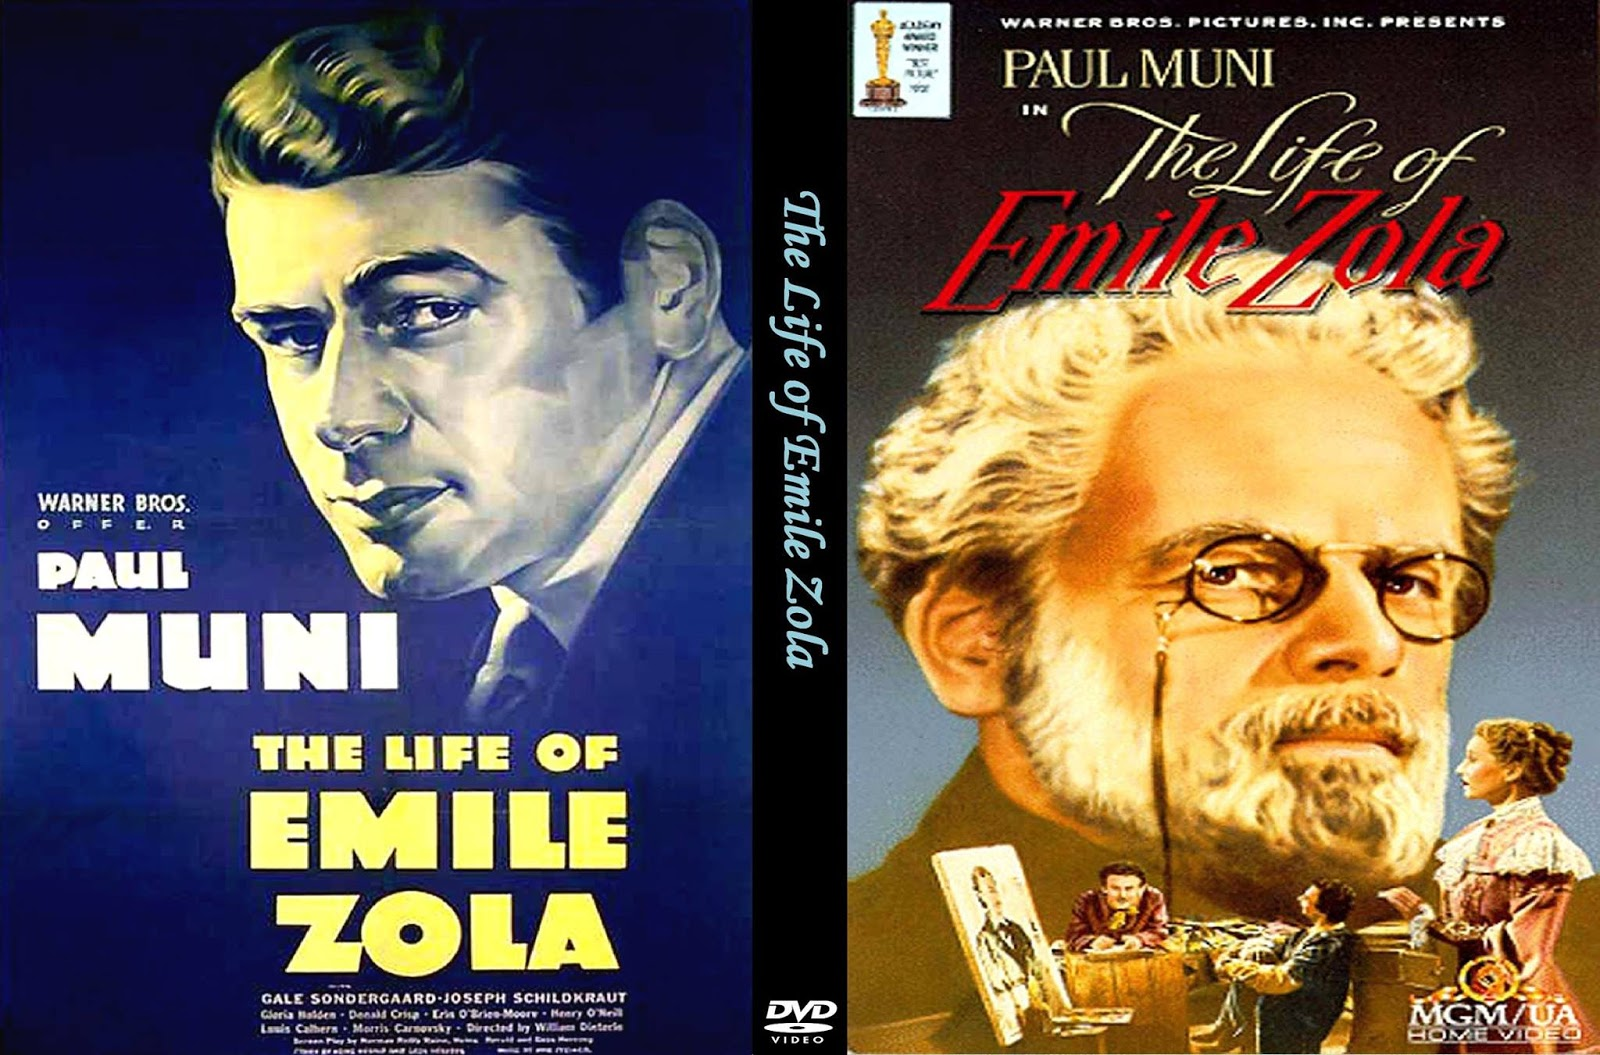 life and works of emile zola By emile zola  introduction :  there is a section on zola resources covering both life and works of zola, and some background resources on the second empire.